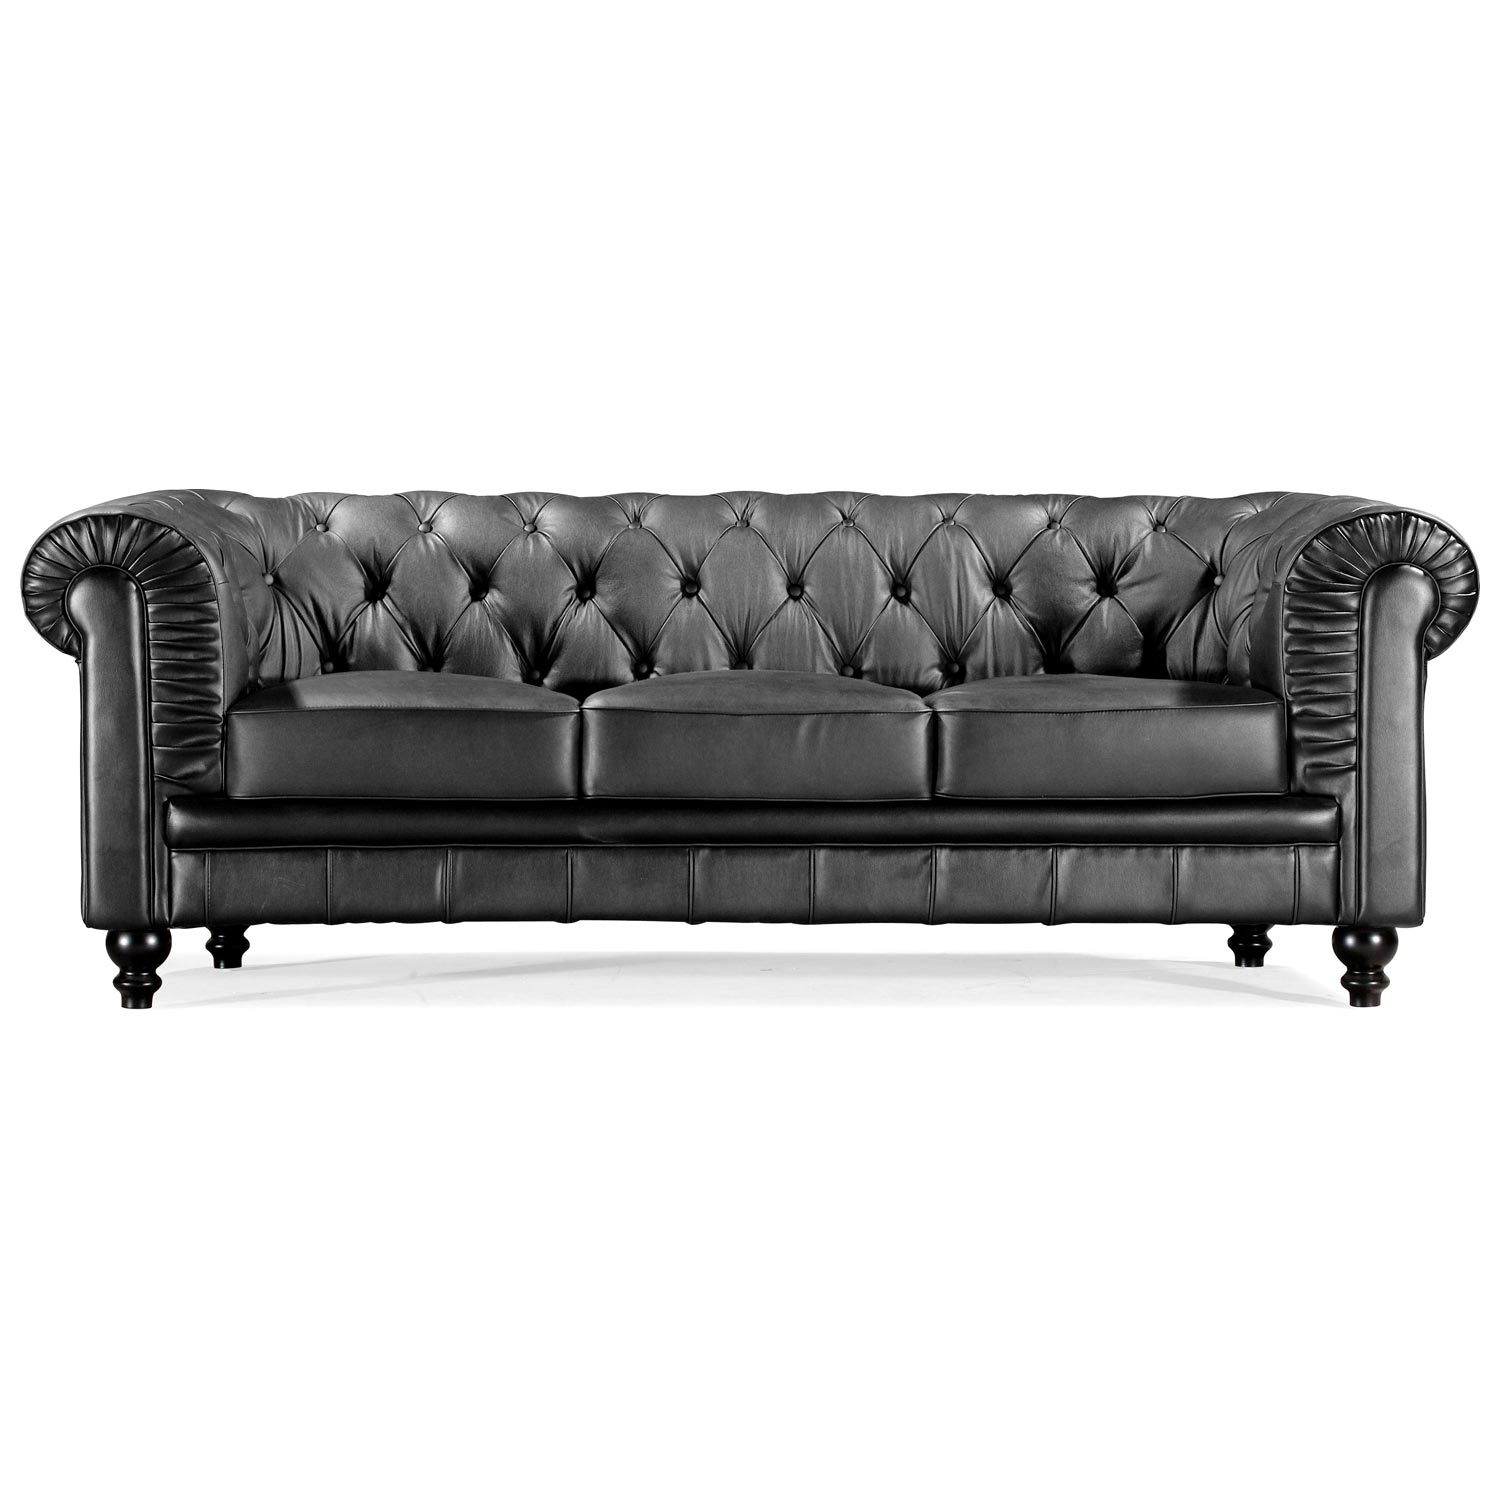 Aristocrat Classic Tufted Leather Sofa - ZM-90011X